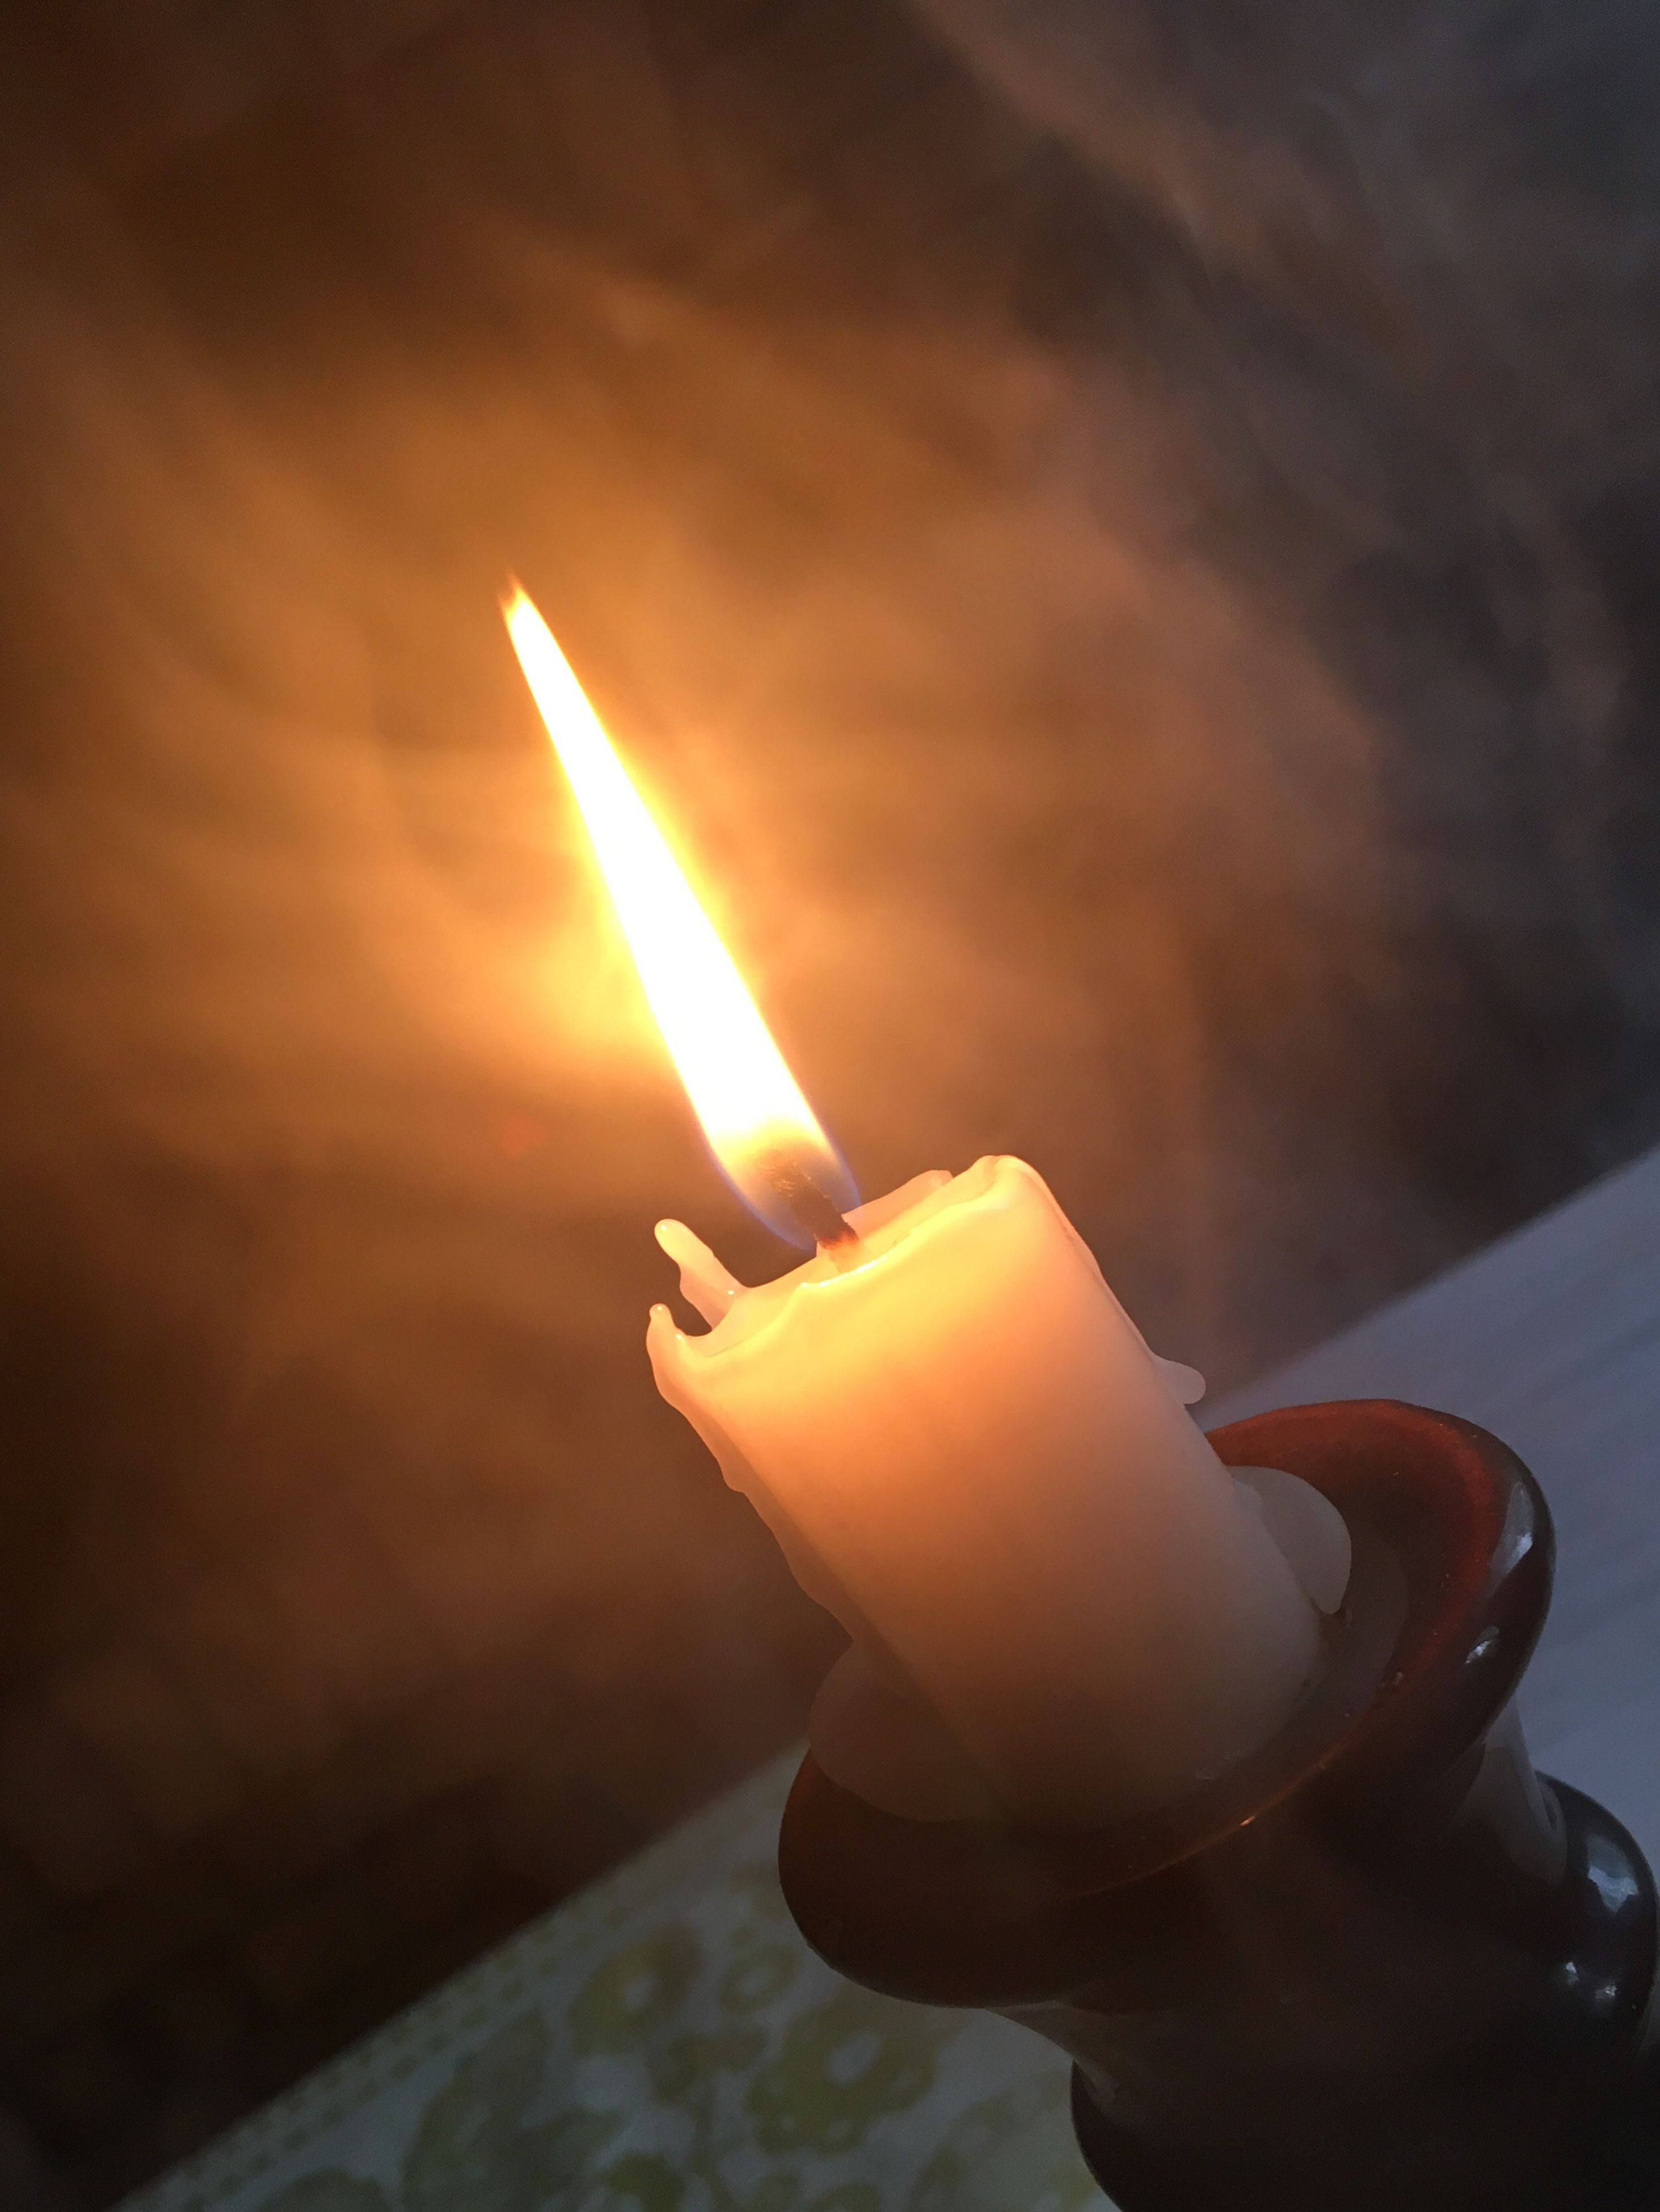 flame, candle, burning, heat - temperature, glowing, illuminated, close-up, focus on foreground, indoors, sunset, no people, night, oil lamp, diya - oil lamp, sky